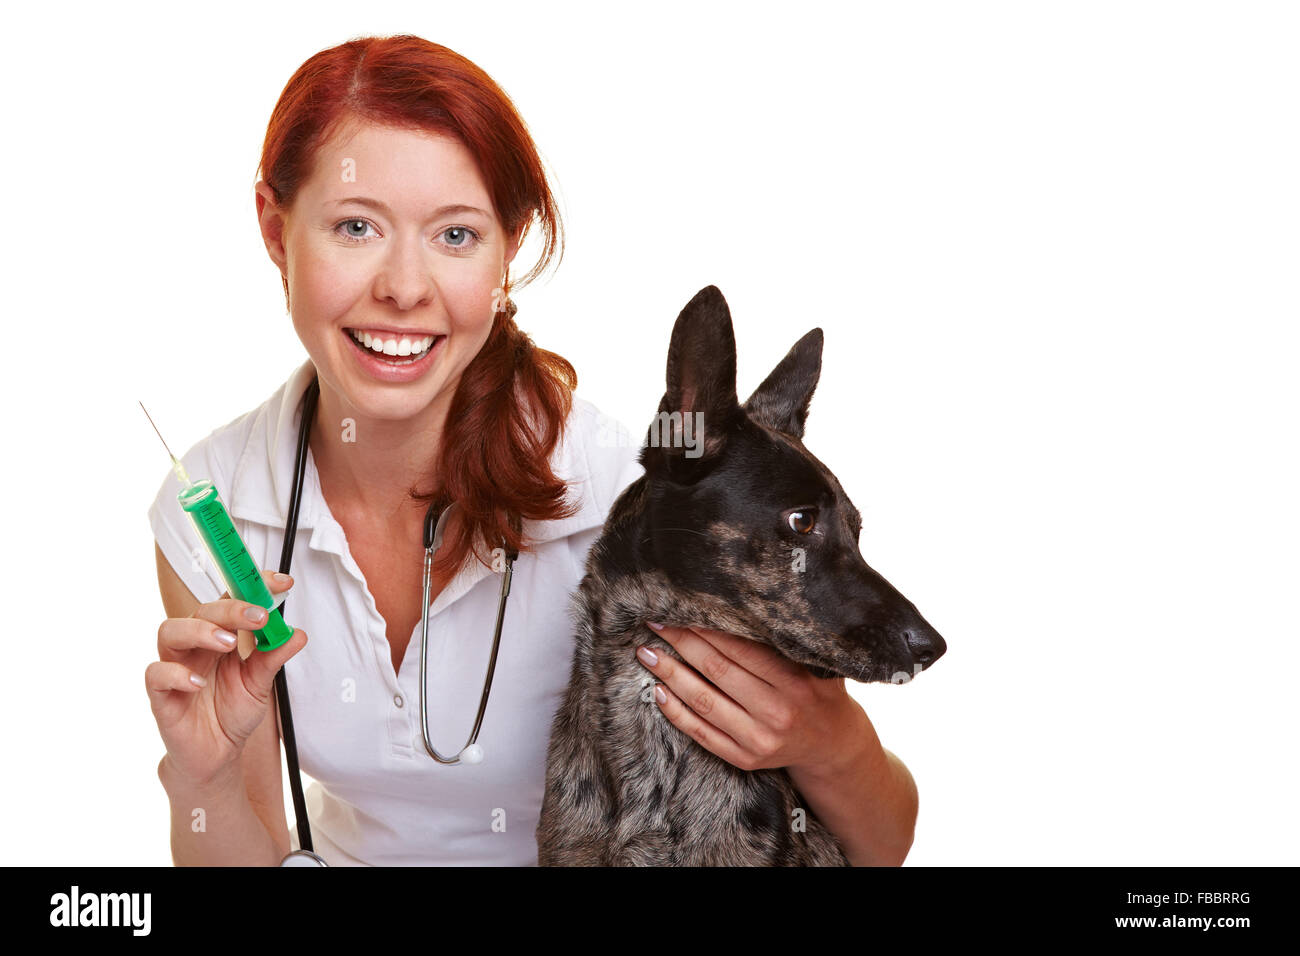 Happy female vet with a syringe and dog - Stock Image